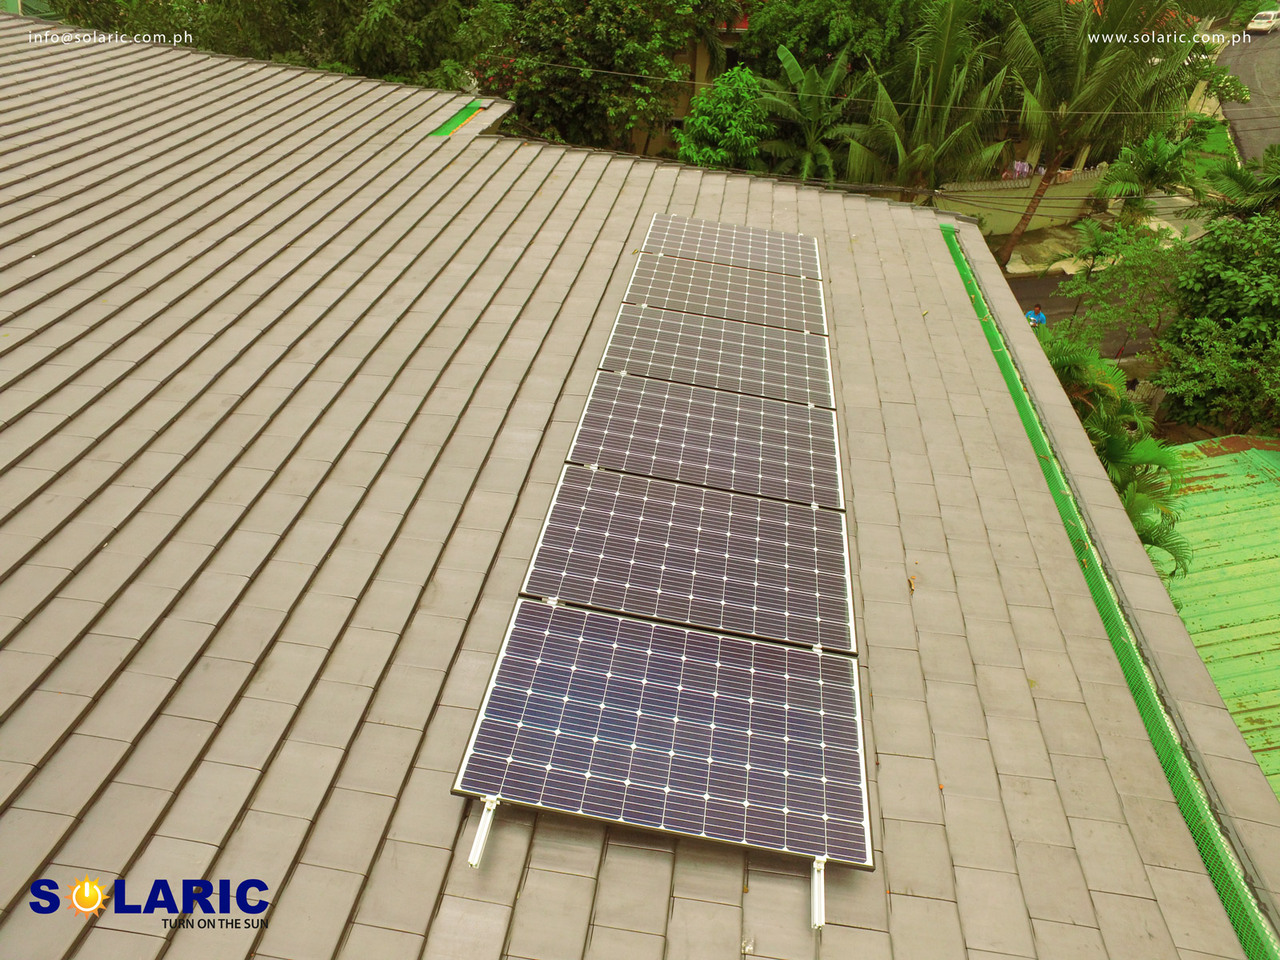 Grid tie system on a roof